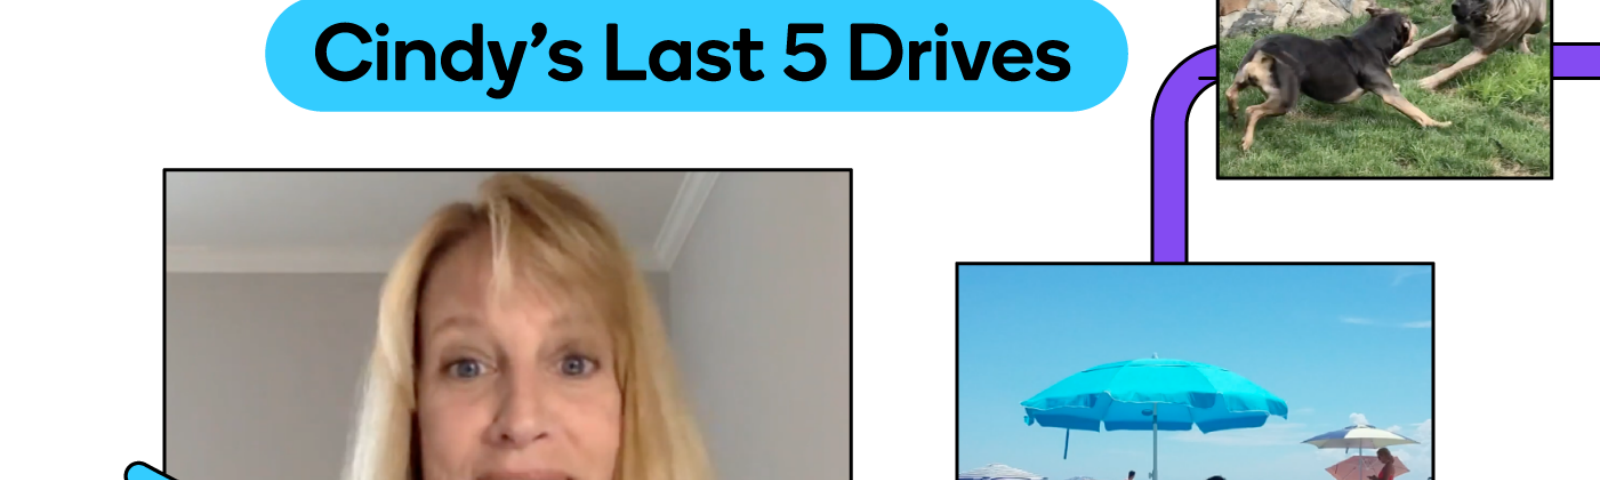 Cindy tells us about her last 5 drives with Waze.